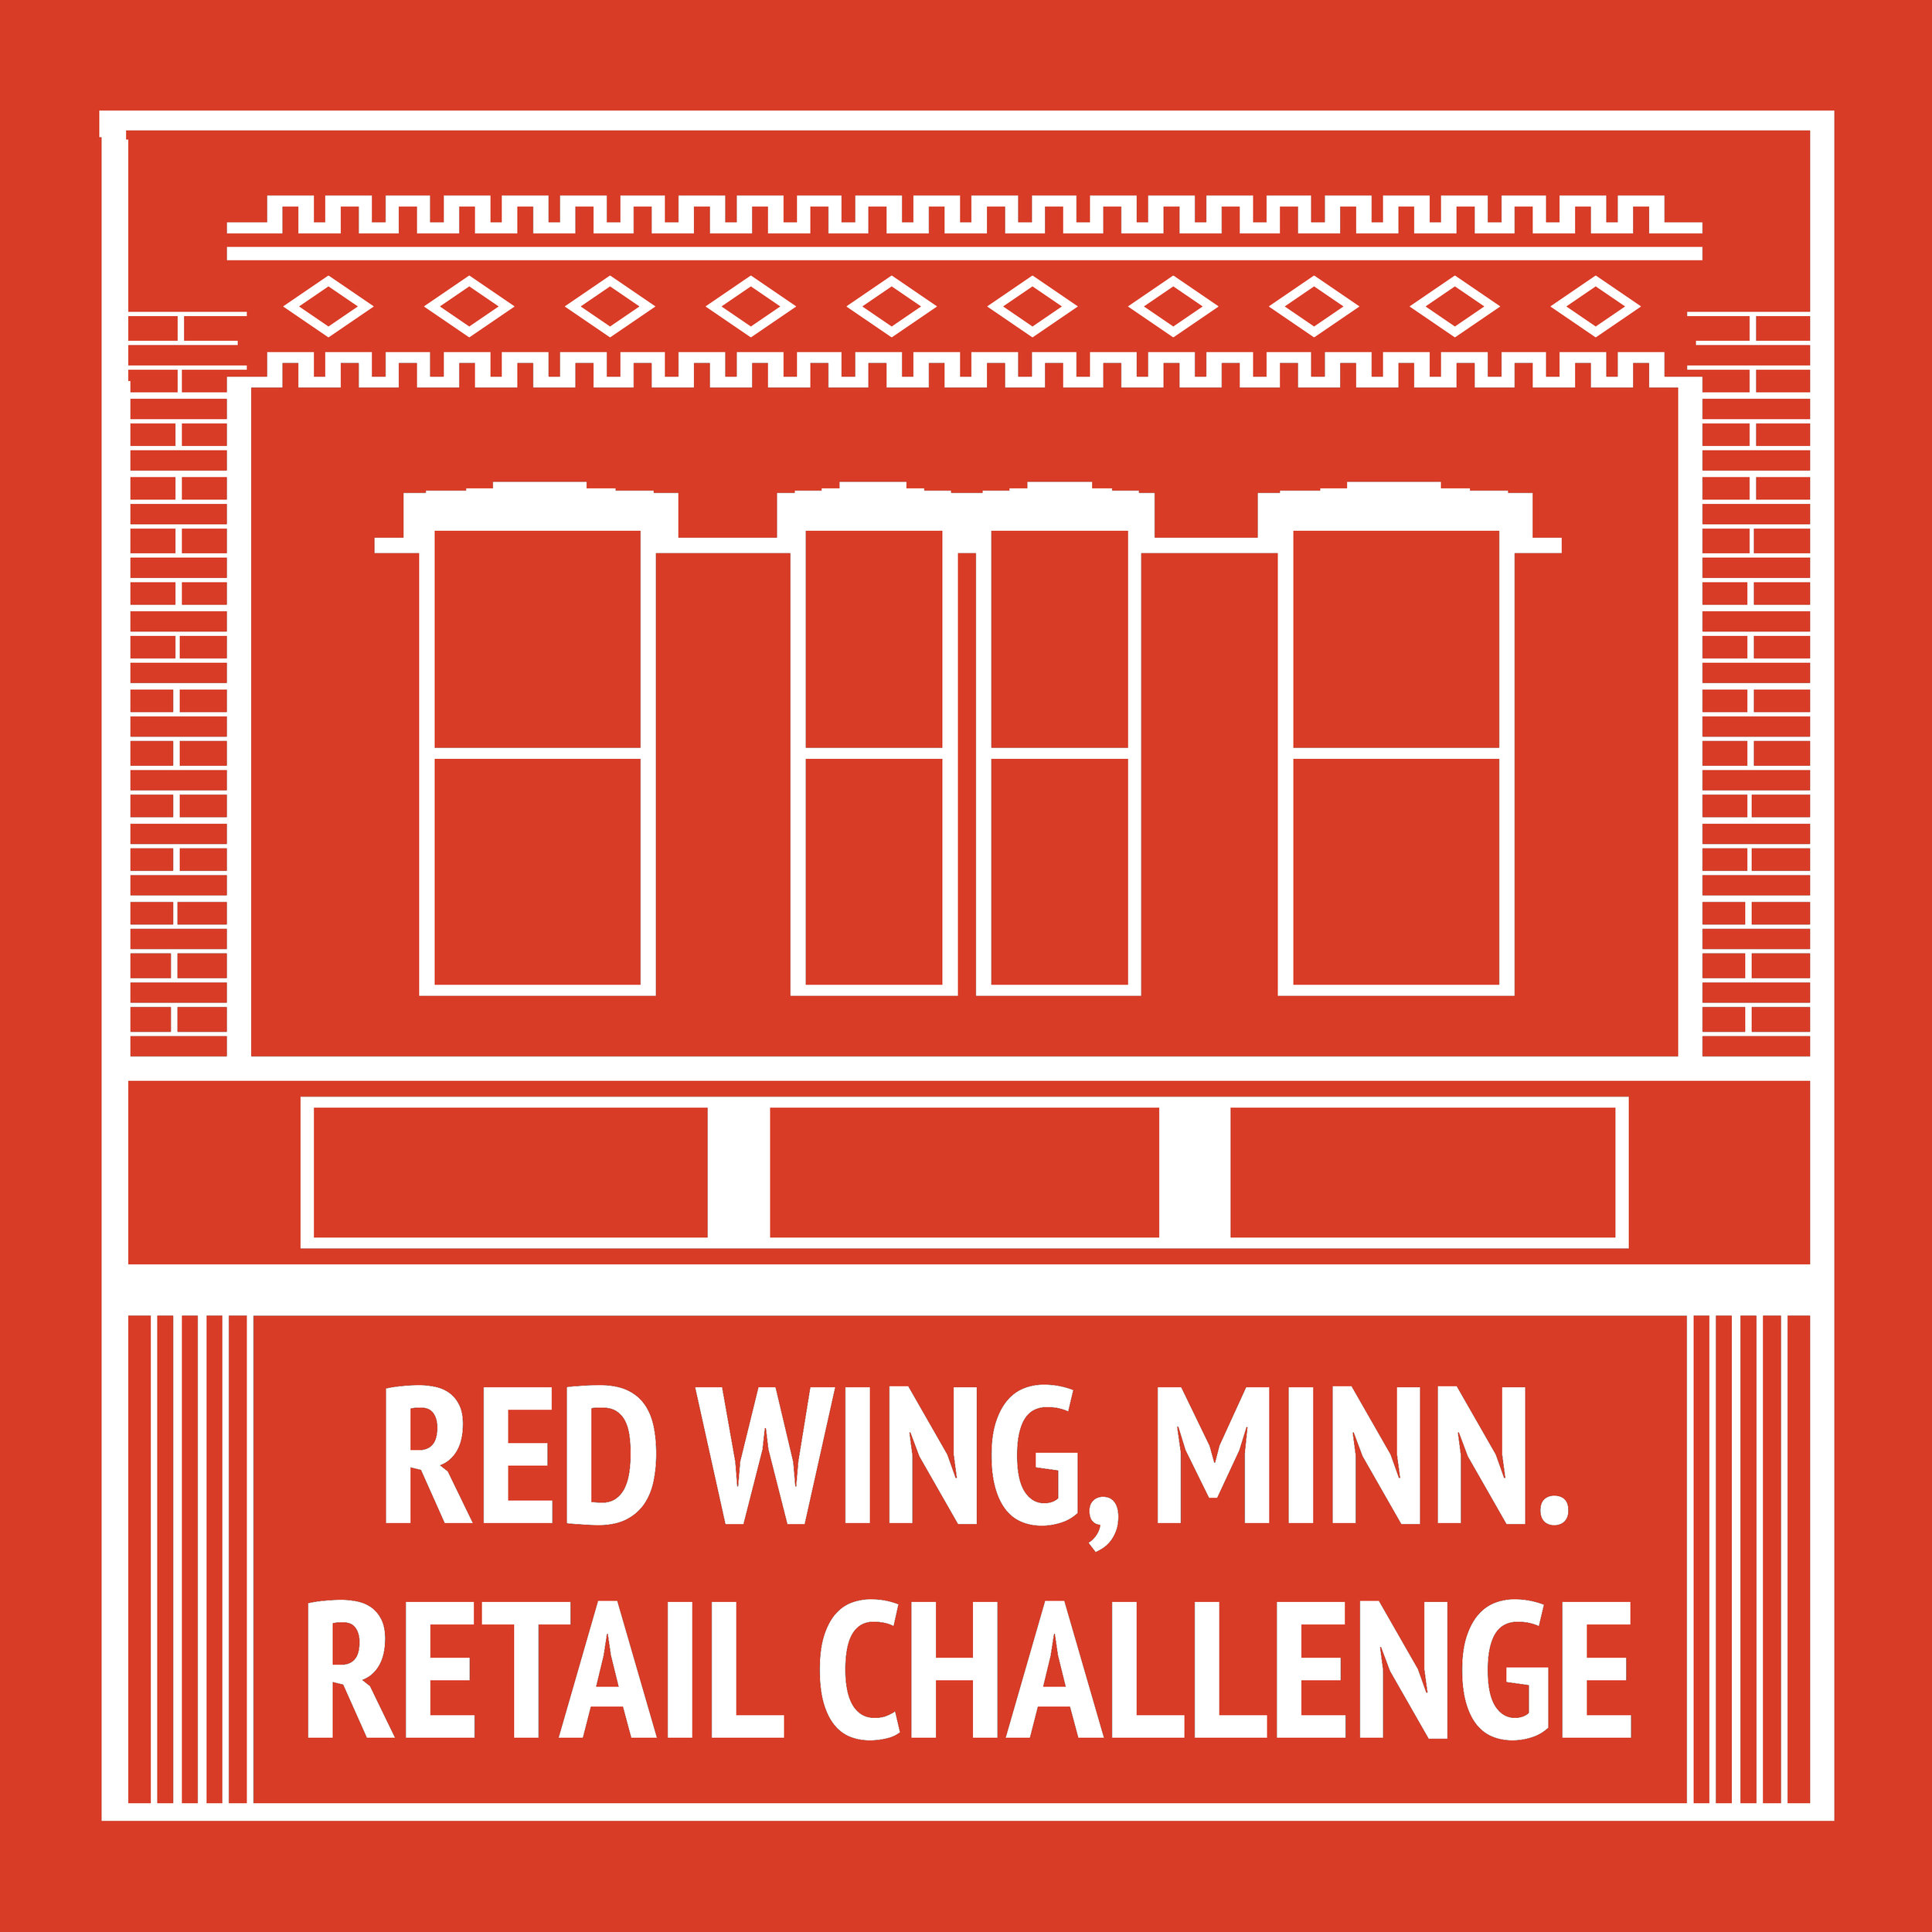 Want our Retail Challenge Materials? - Want the goods? Could you give us your email in exchange? I promise I won't spam you with a bunch of junk…I'll just let you know when I have a new episode or something that might make your life easier in your downtown. Just fill out the form below and we'll email off the PDF. What's the saying? R & D: Ripoff and Duplicate!